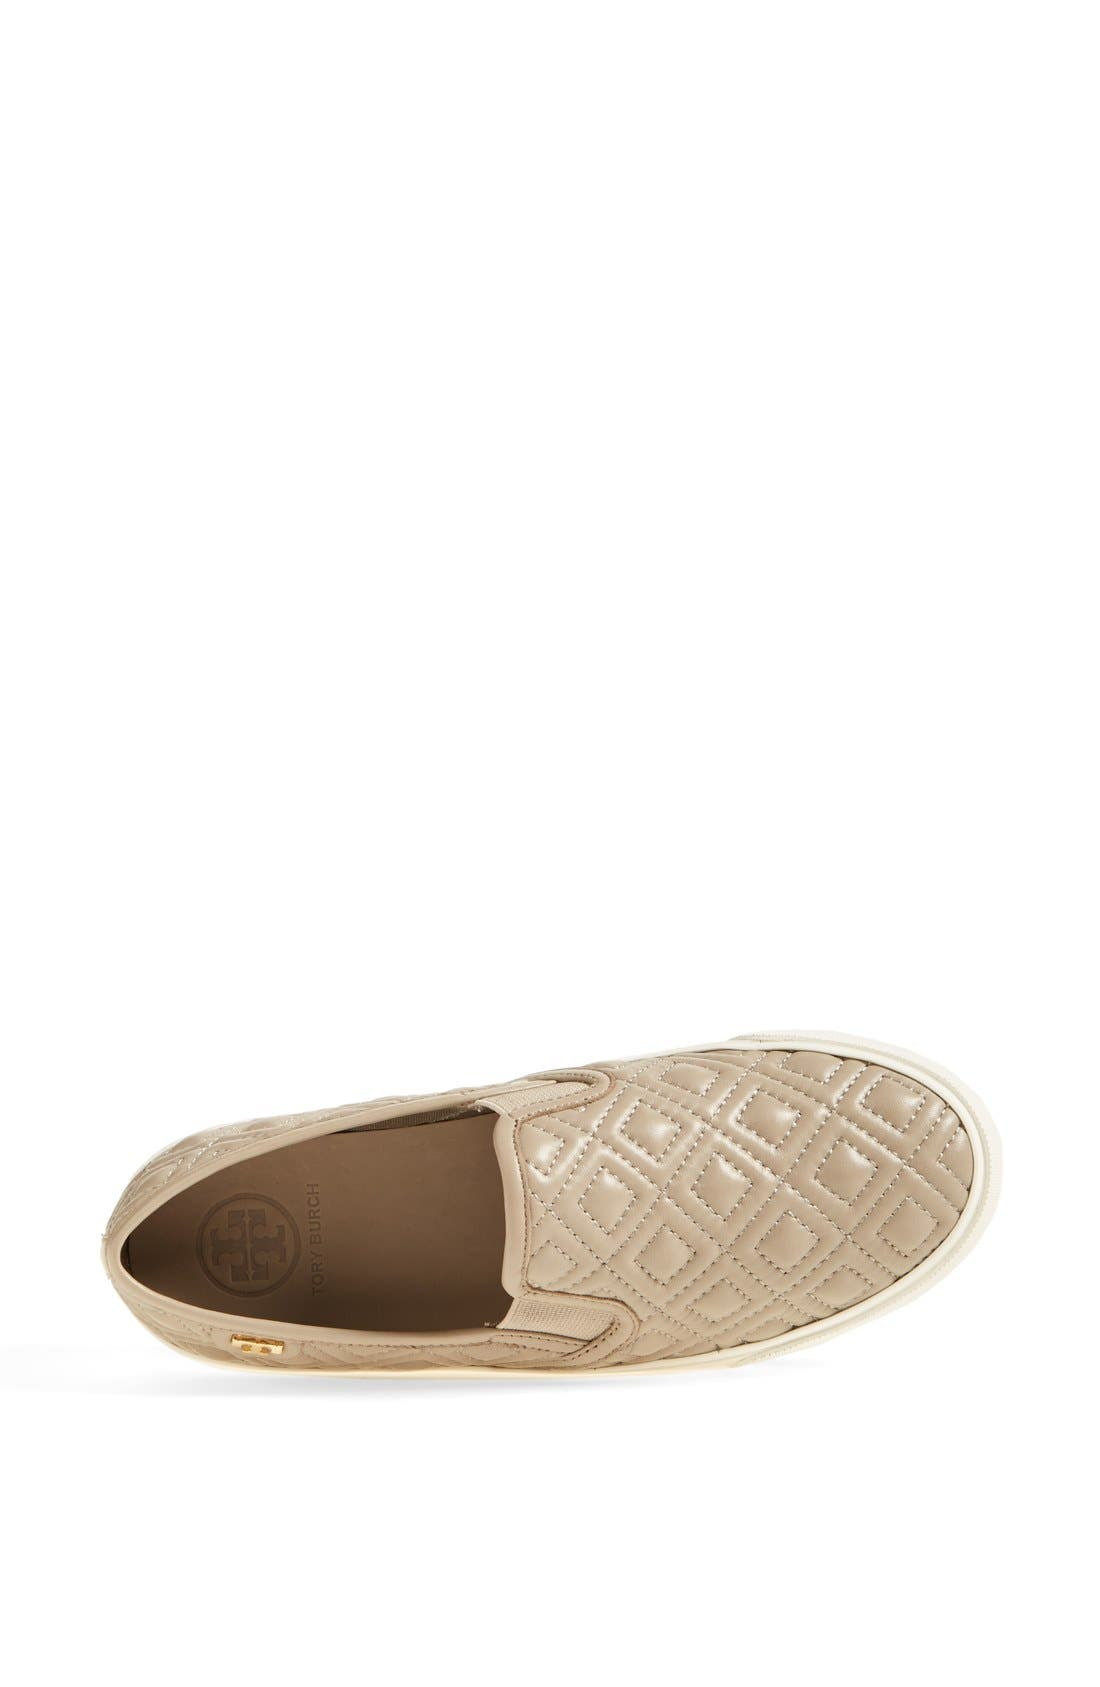 Alternate Image 3  - Tory Burch 'Jesse' Quilted Leather Sneaker